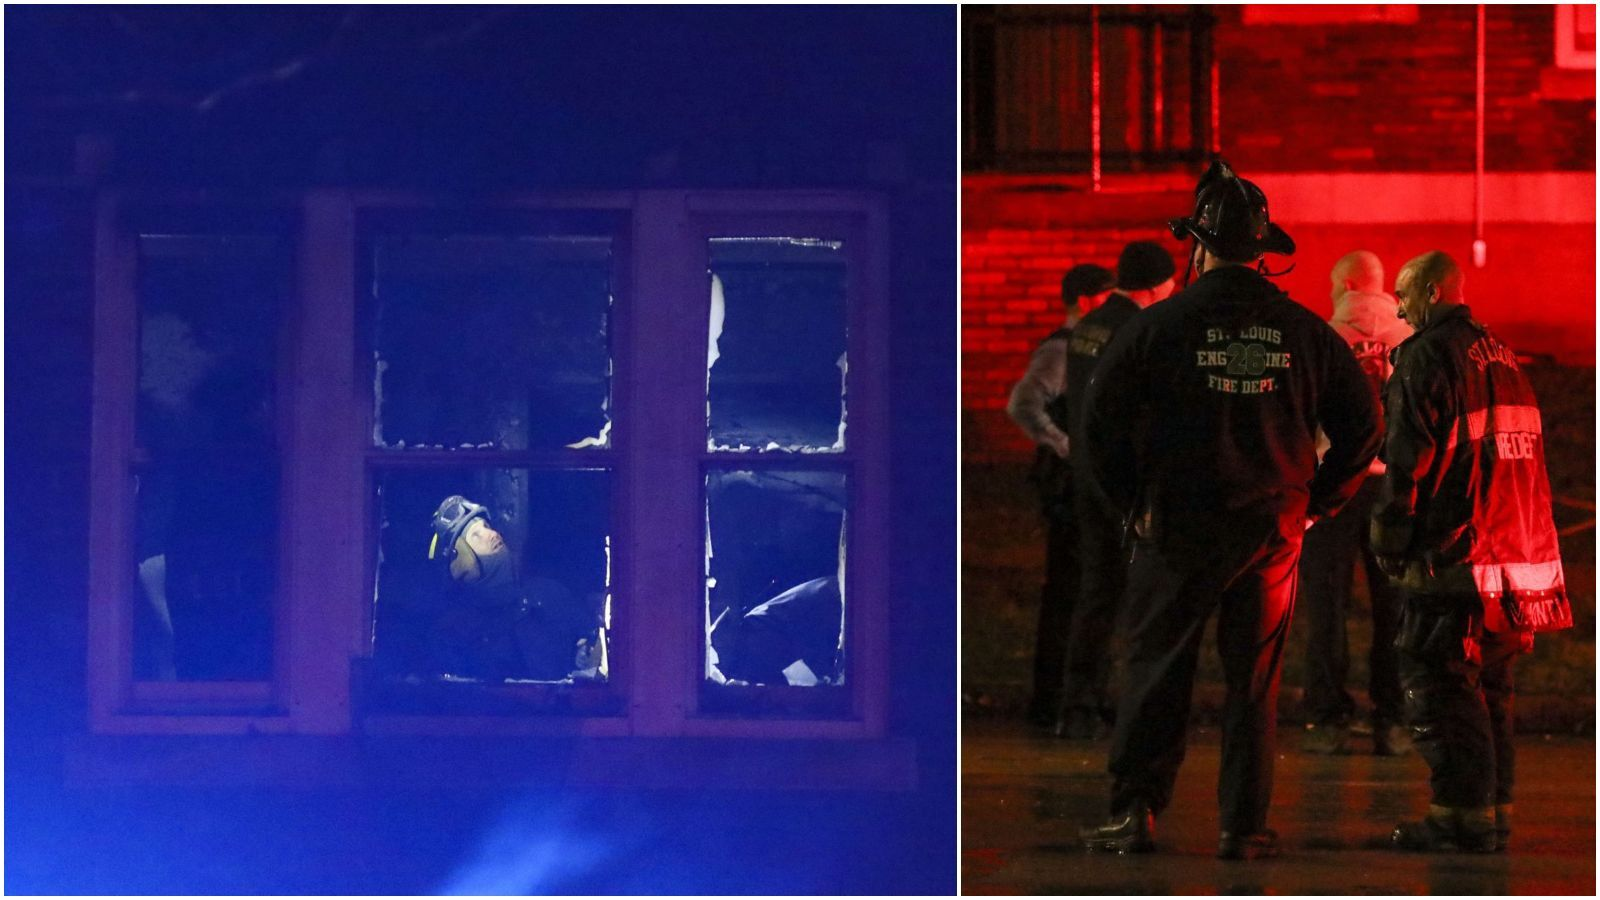 Toddler and infant rescued from apartment fire in north St. Louis, woman jumps from window to safety